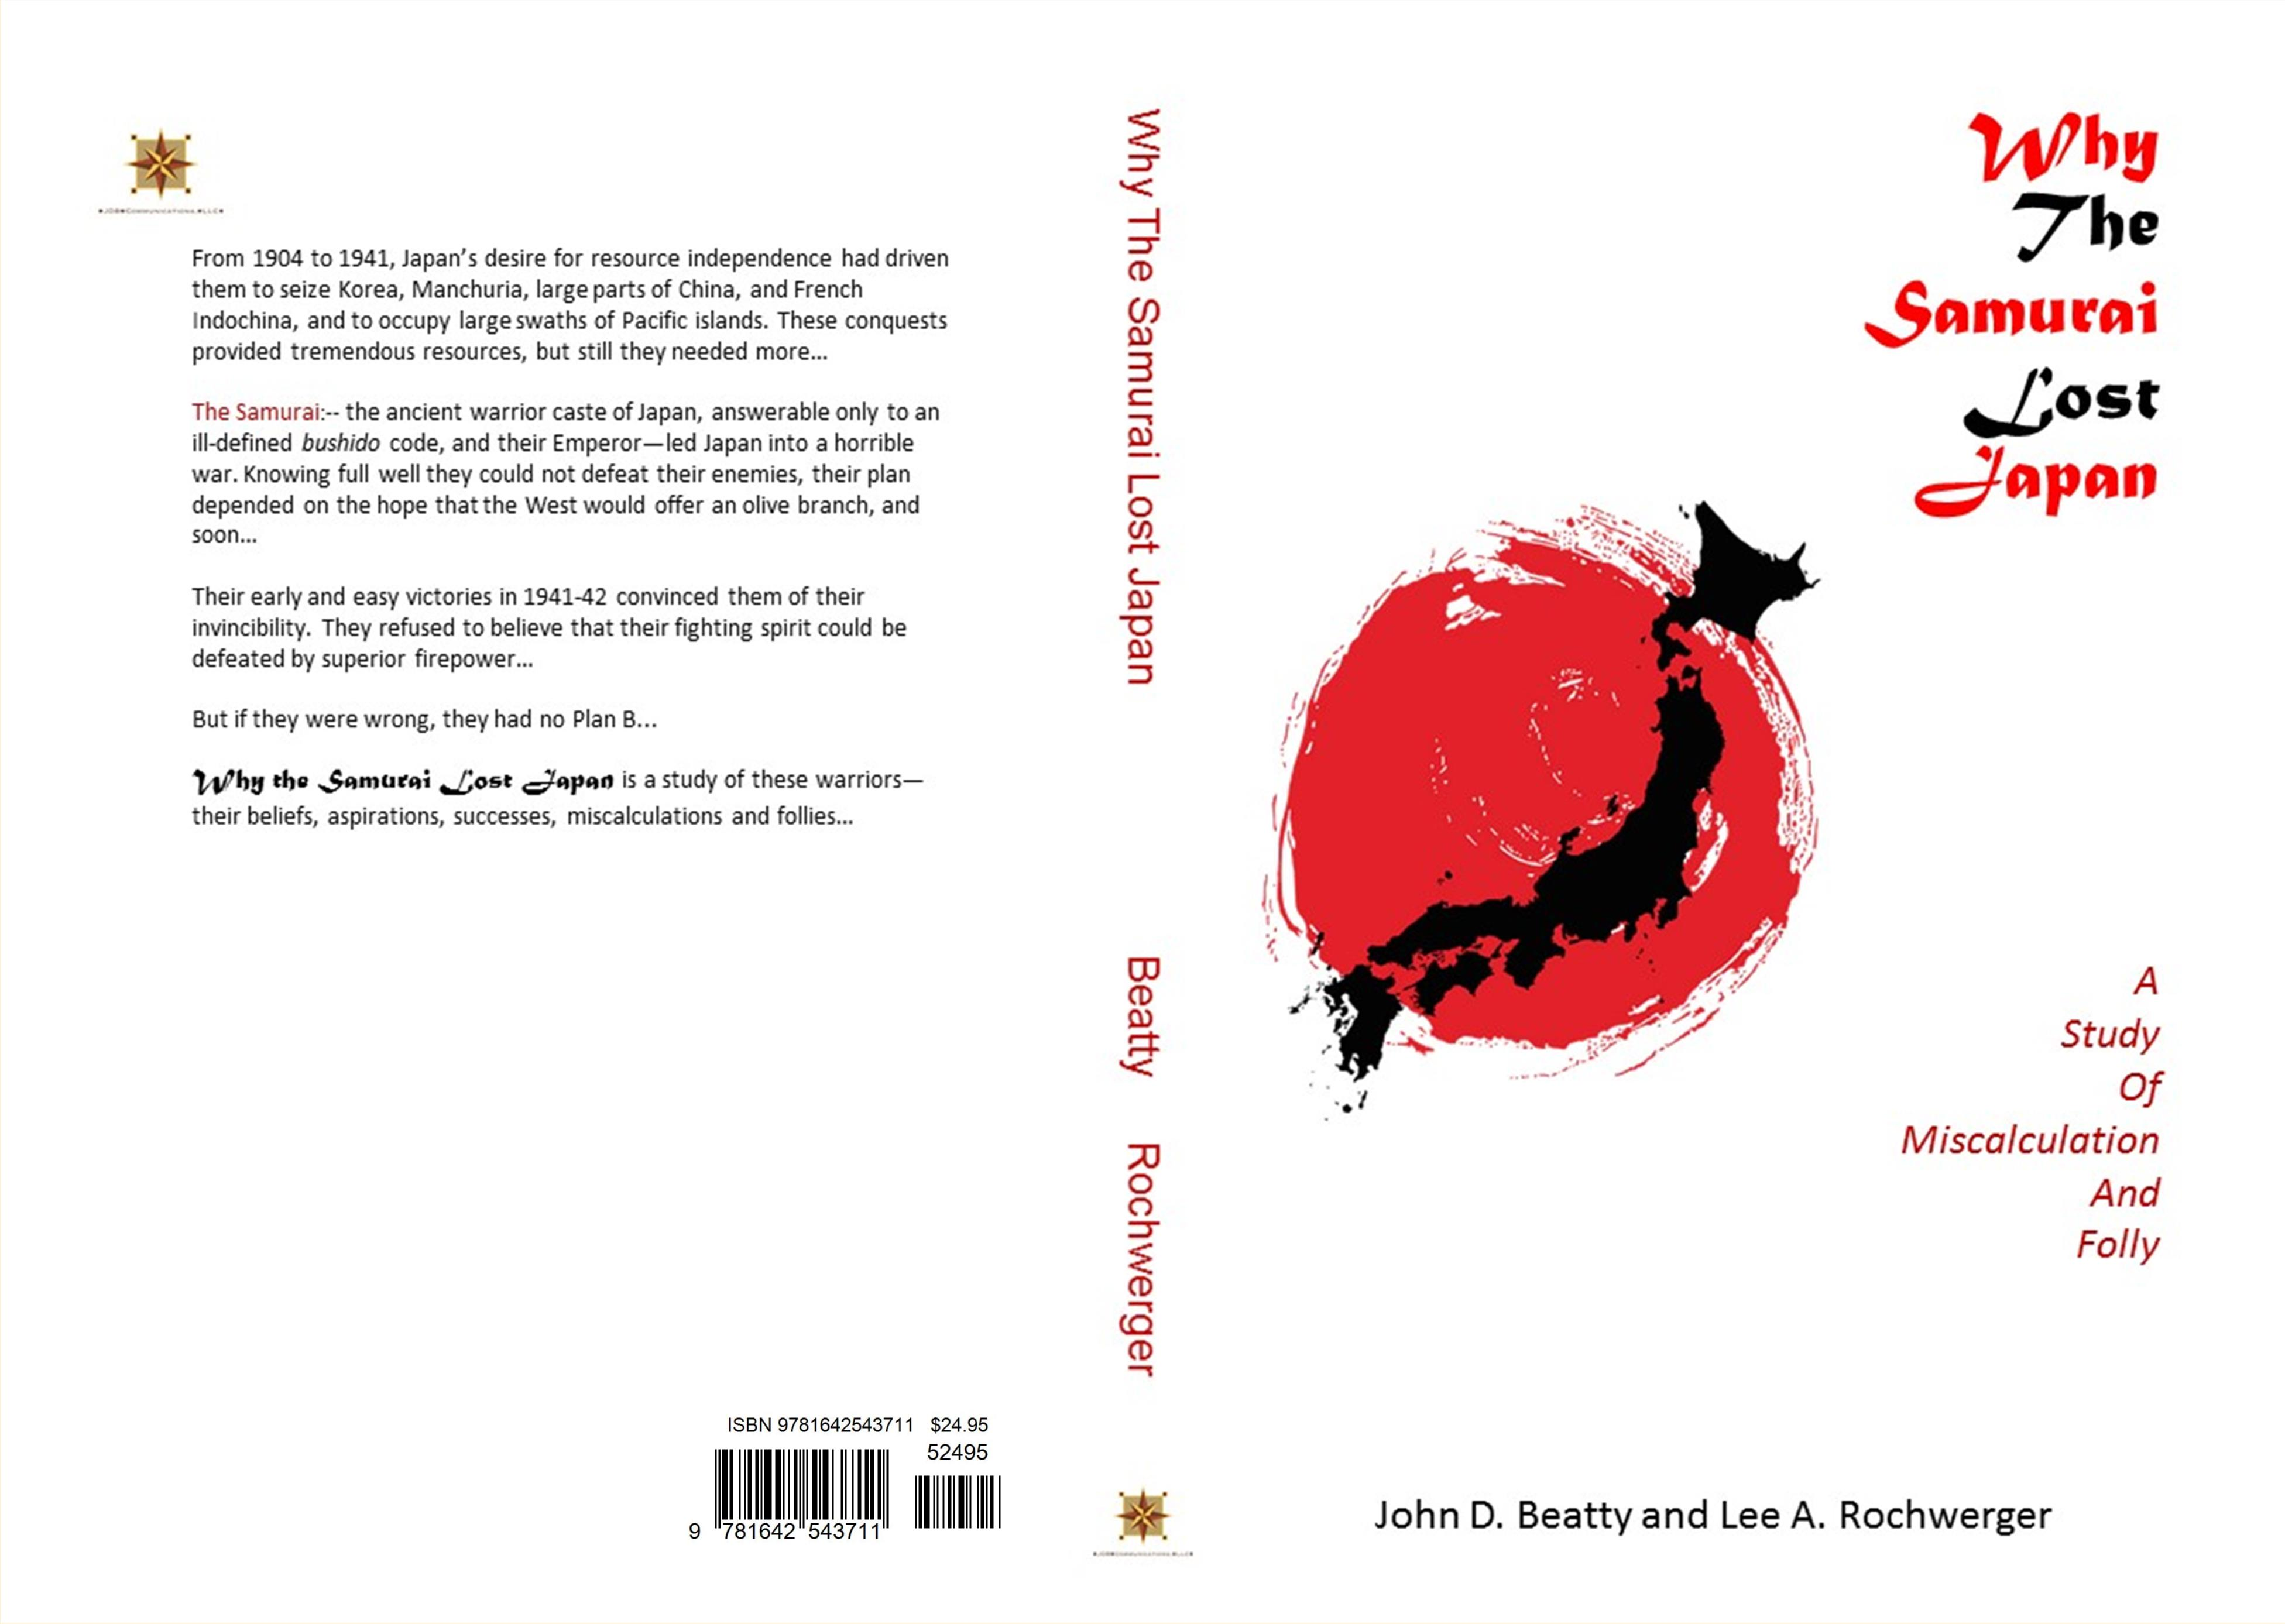 Why the Samurai Lost Japan: A Study in Miscalculation and Folly cover image